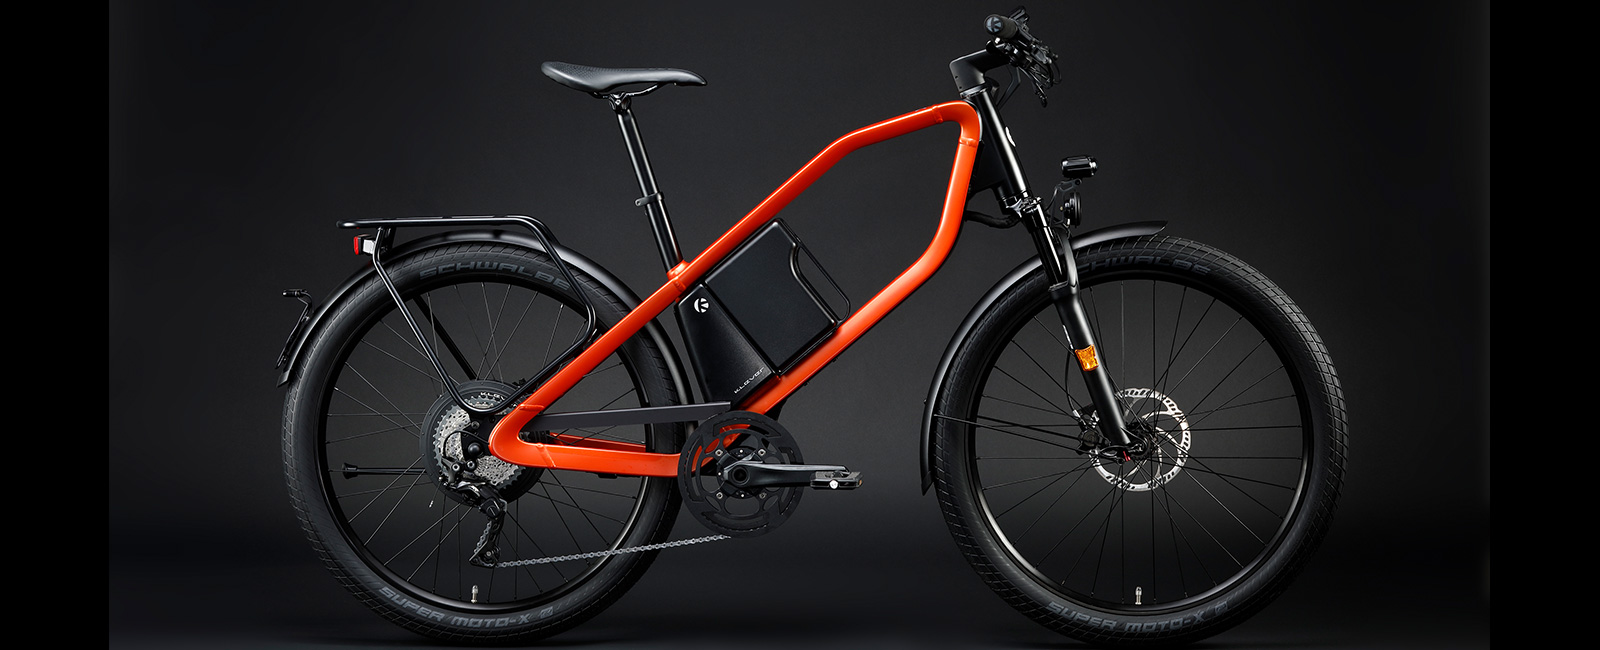 Velo KLEVER X Speed ORANGE (M) 570Wh/30-60km